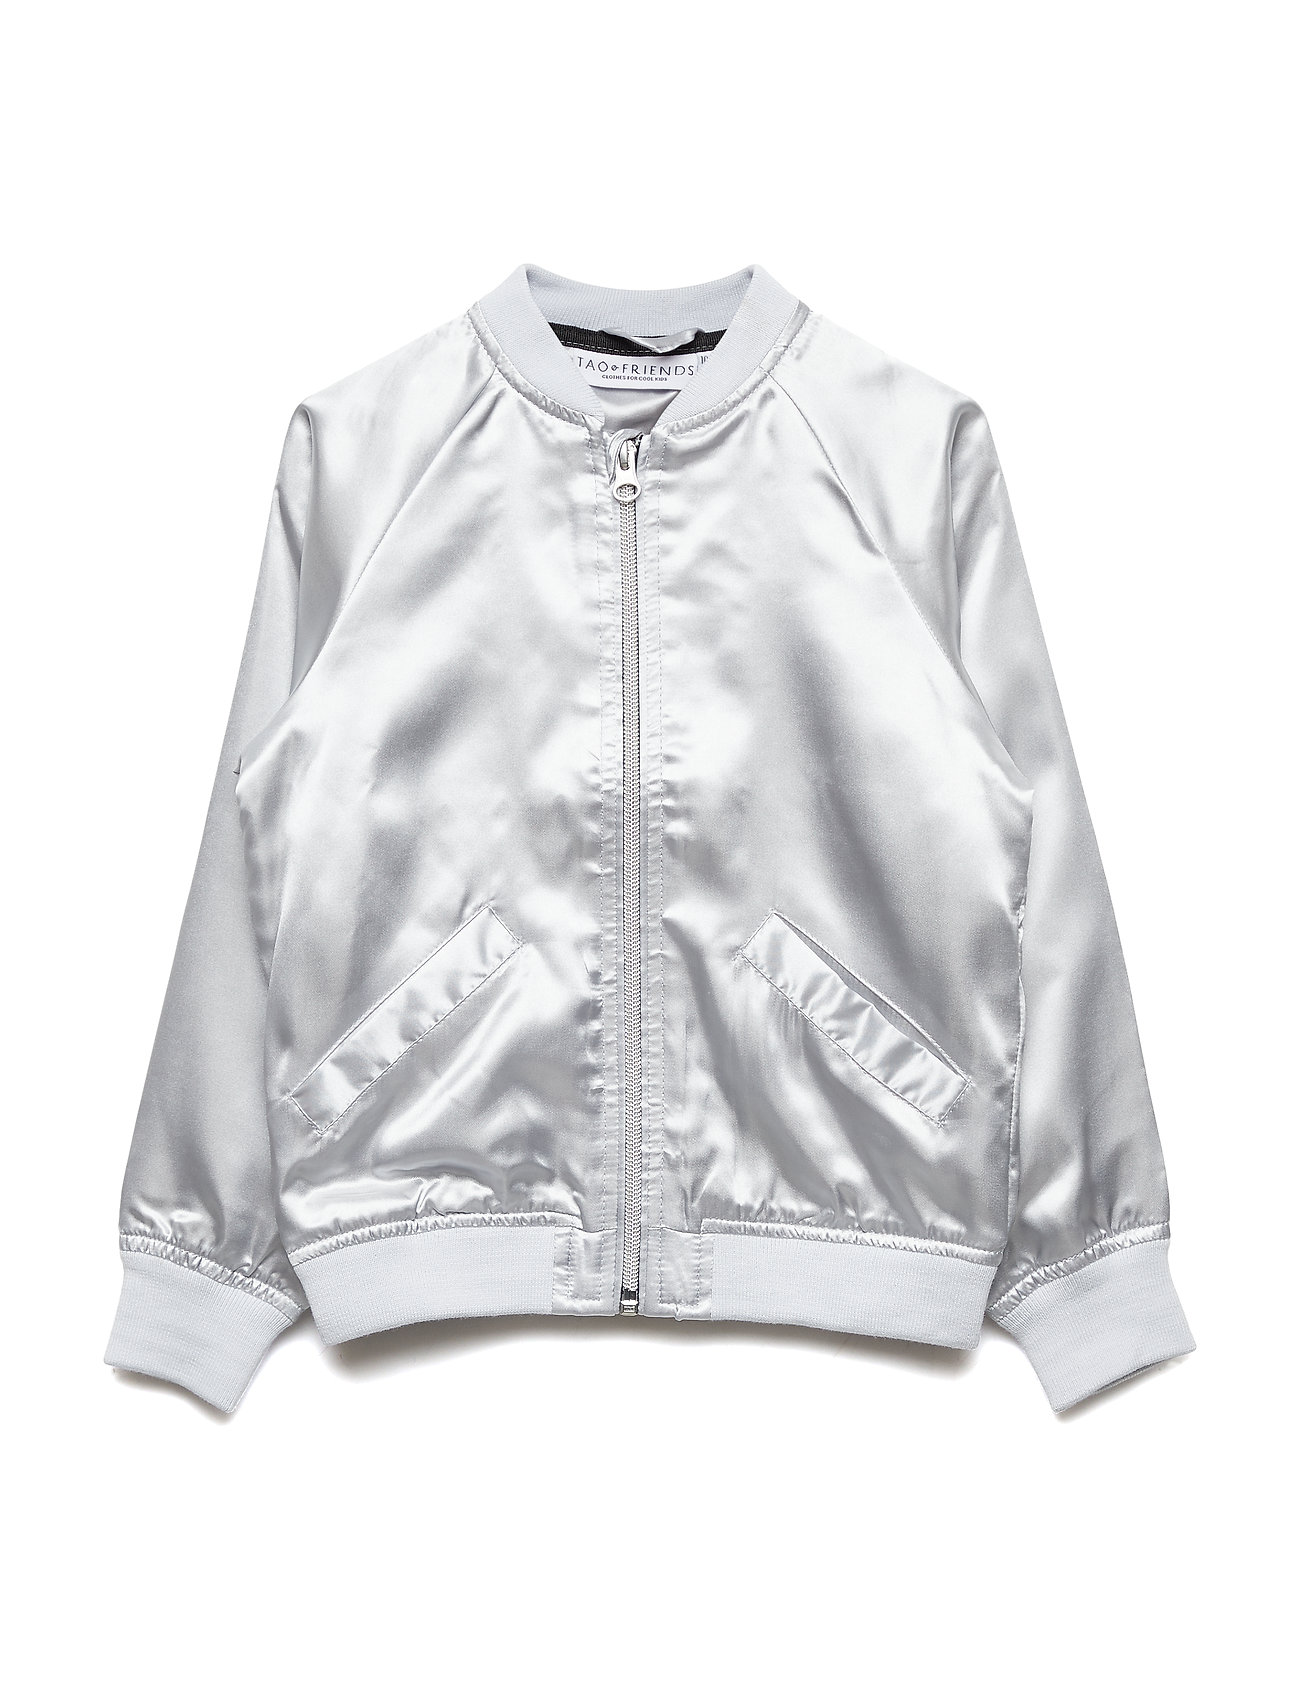 Tao & friends Bomber Jacket Koalan embroidered single-animal - SILVER